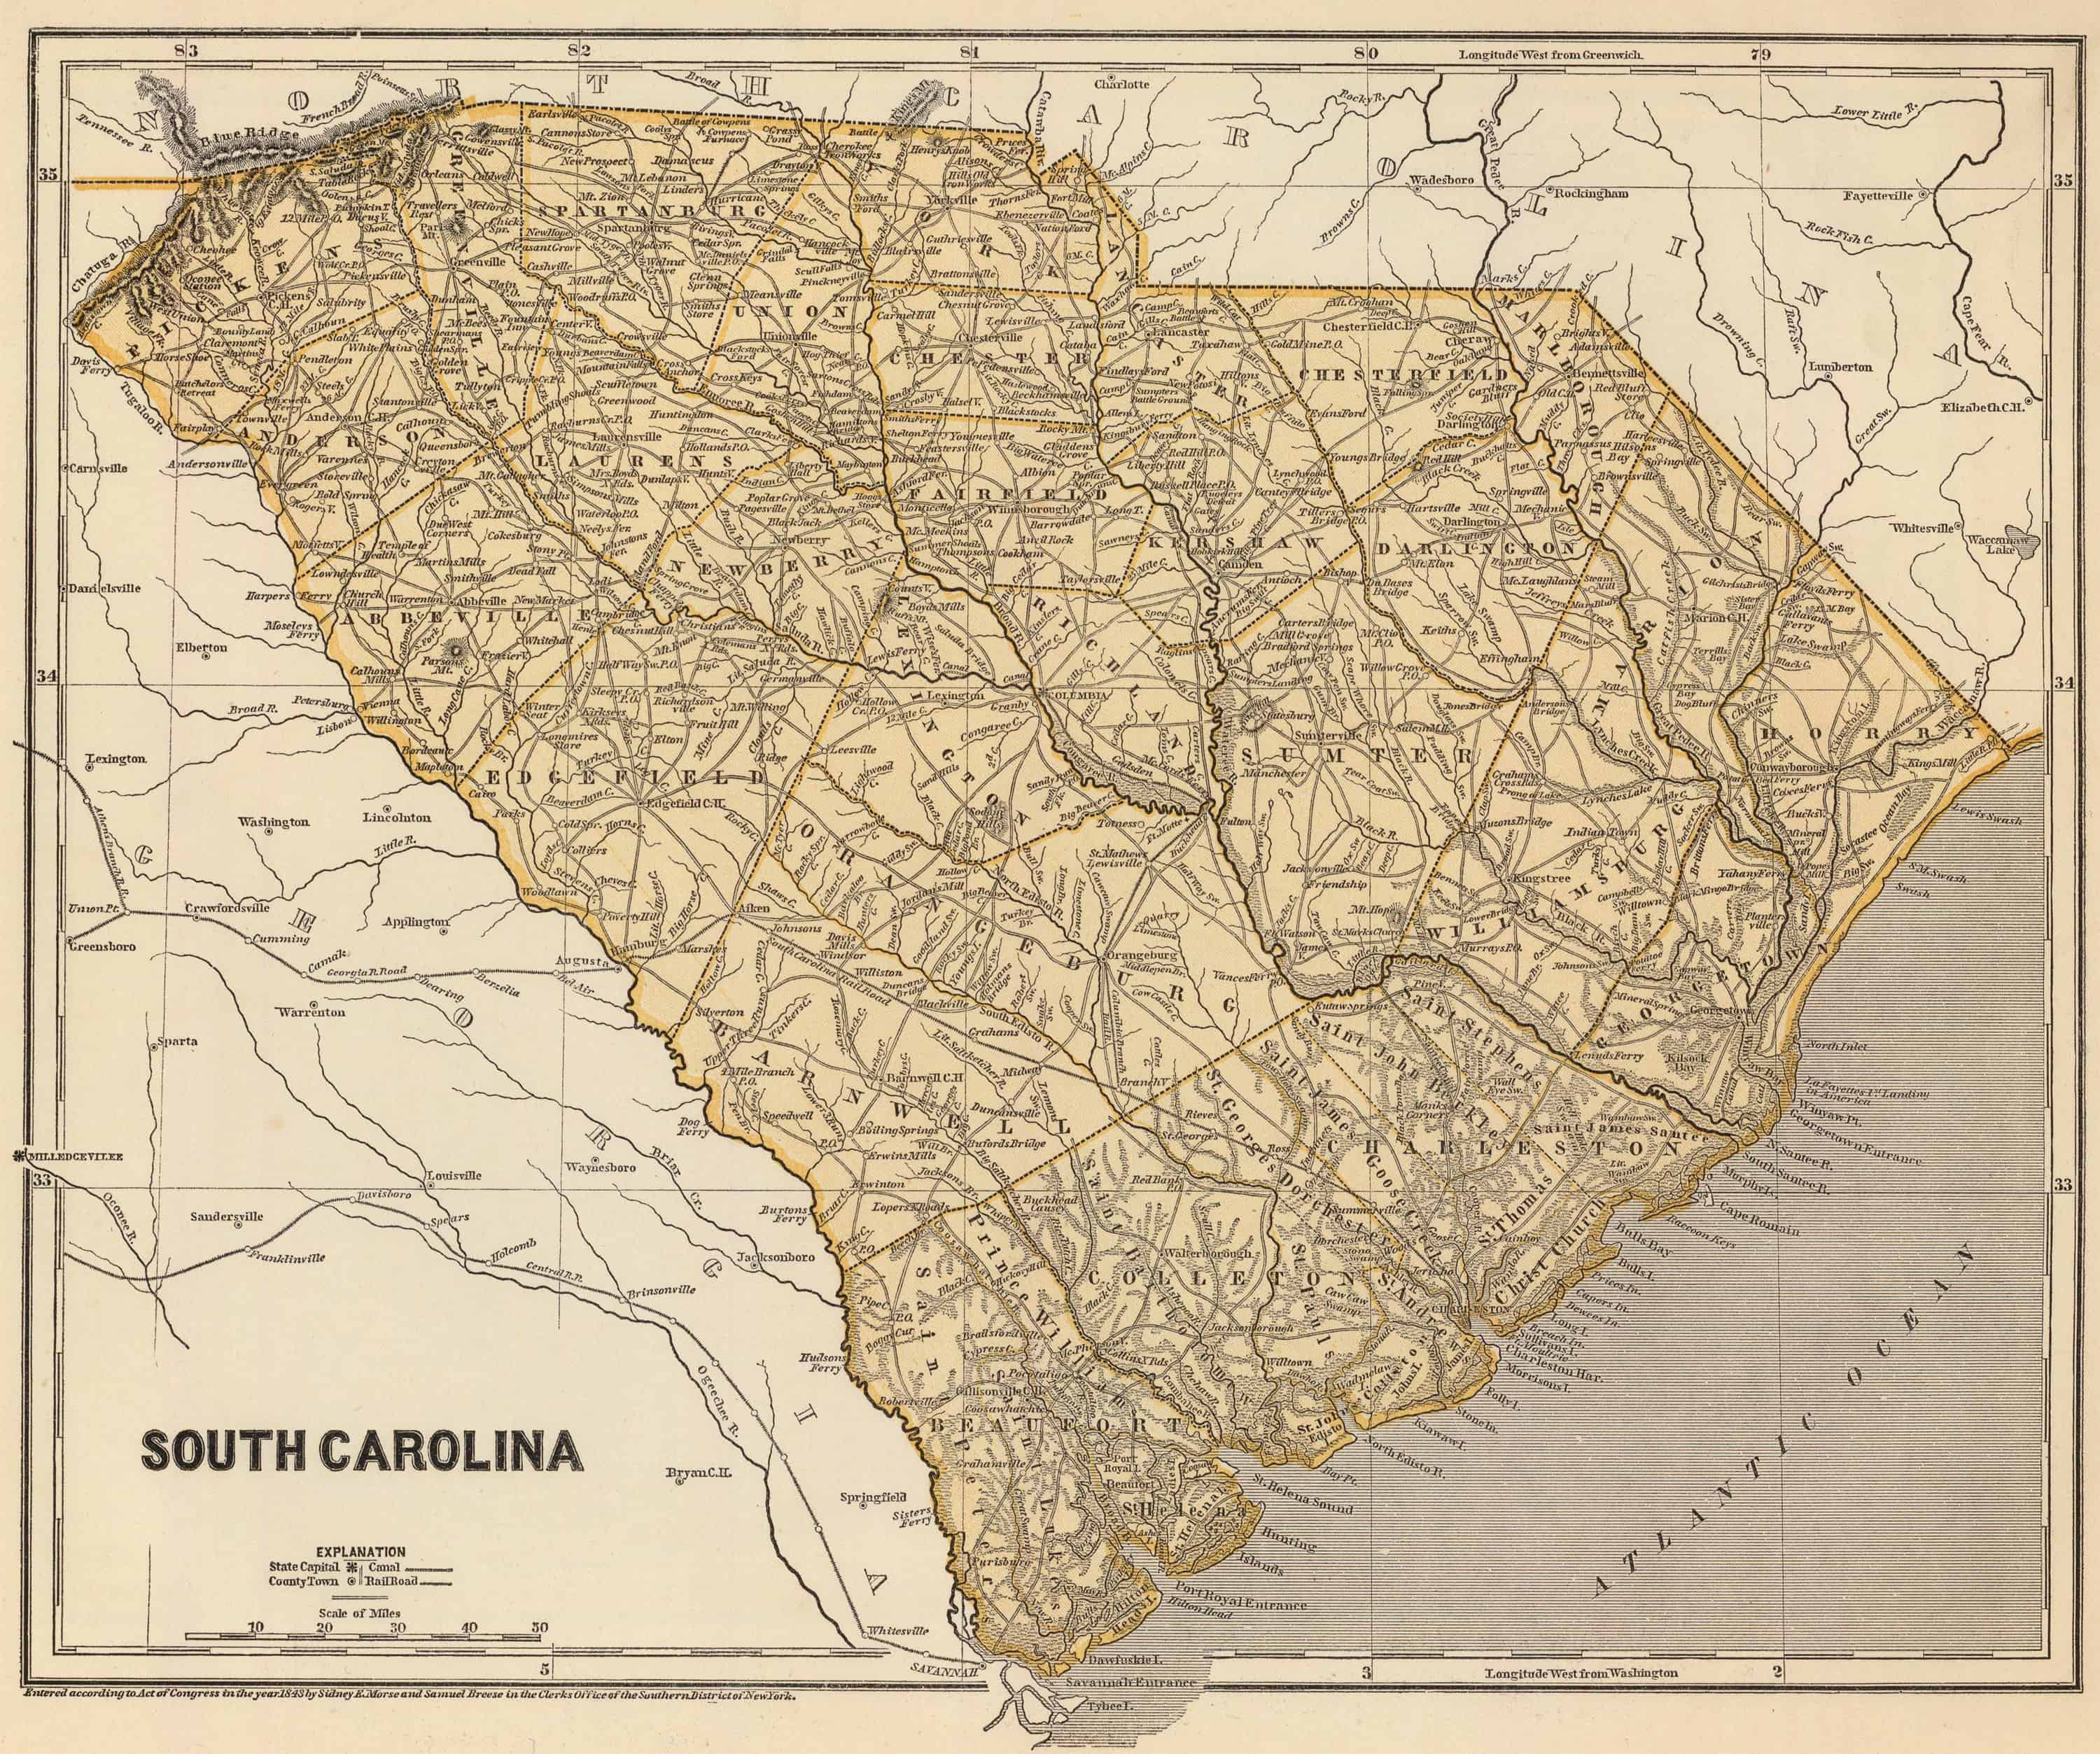 Old Historical City, County and State Maps of South Carolina on map of oglethorpe, map of al counties, map of oregon counties, map of brantley, map of nc counties, map of hall, map of missouri counties, map of kentucky counties, map of southern nj counties, map of habersham, map ar counties, map of co counties, map of cook, map of johnson, map of thomas, map of tl counties, map of alabama counties, map of colquitt, south carolina counties, map of nm counties,